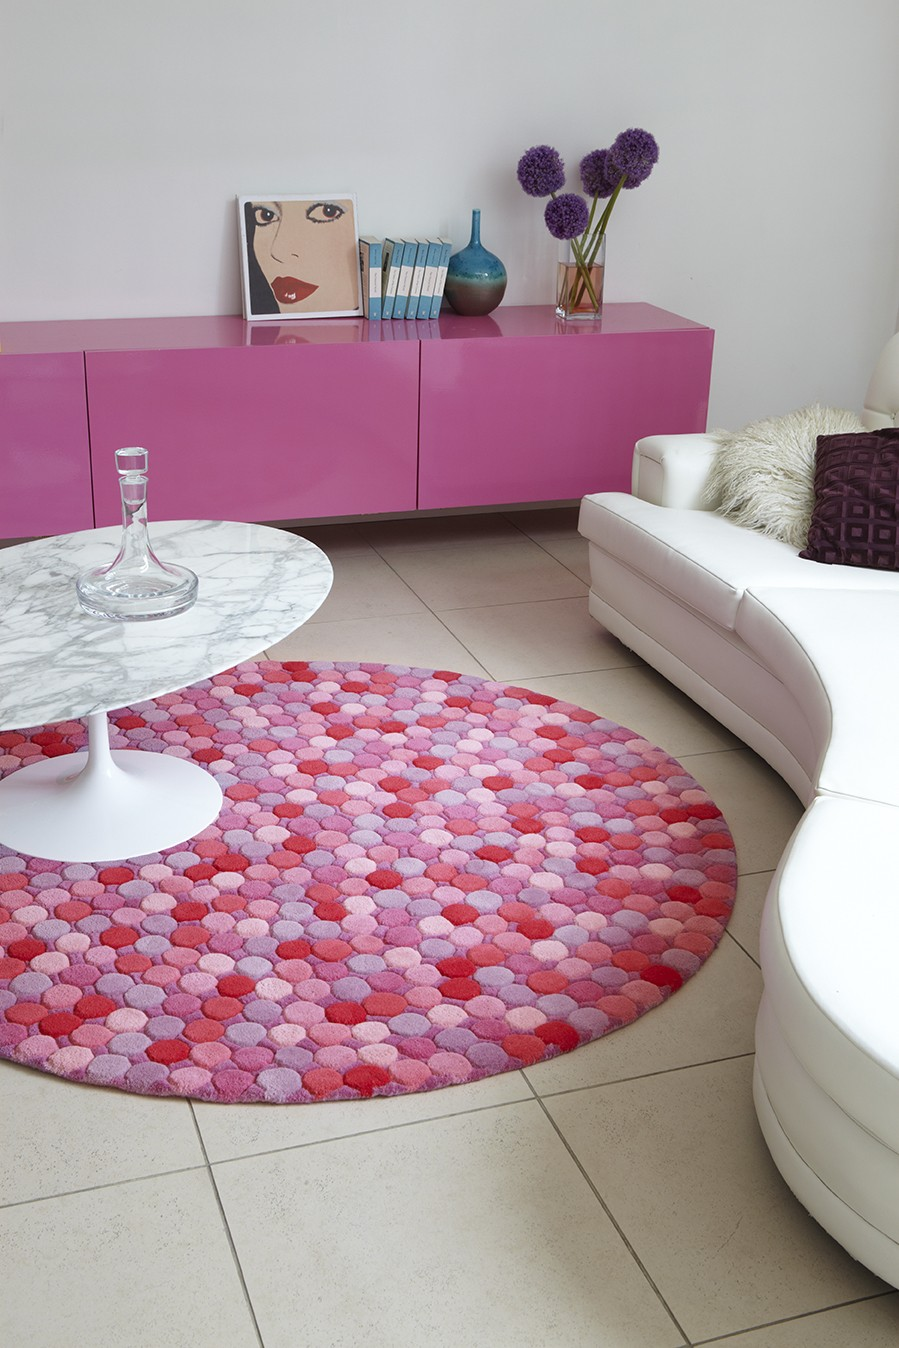 blog and news from the interior design industry kia designs